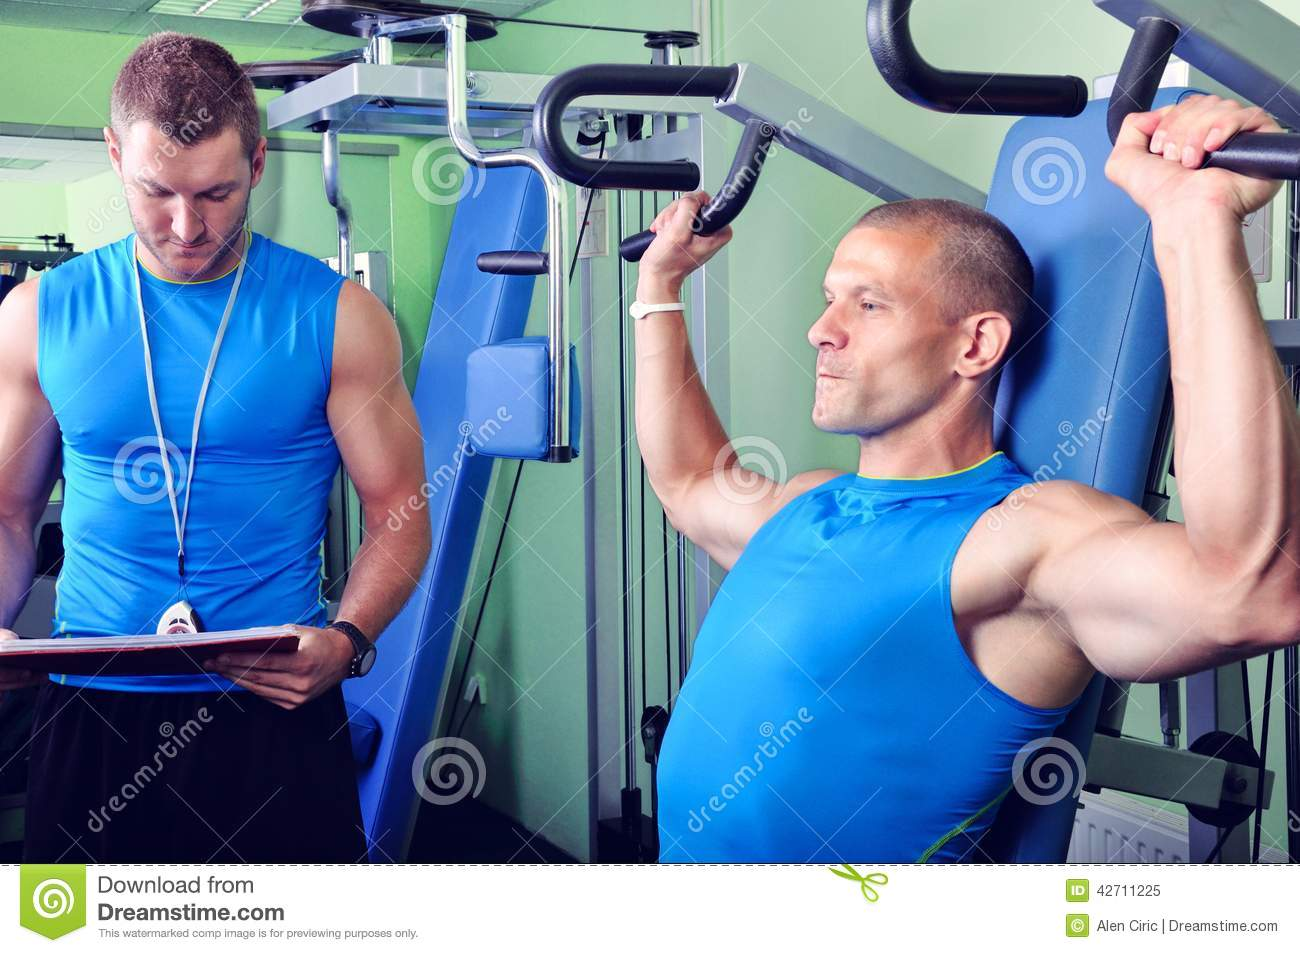 dating a male personal trainer Is hooking up with your chiseled trainer a strategy for bliss or the first step down a path of studios you'll never want to set foot in again.